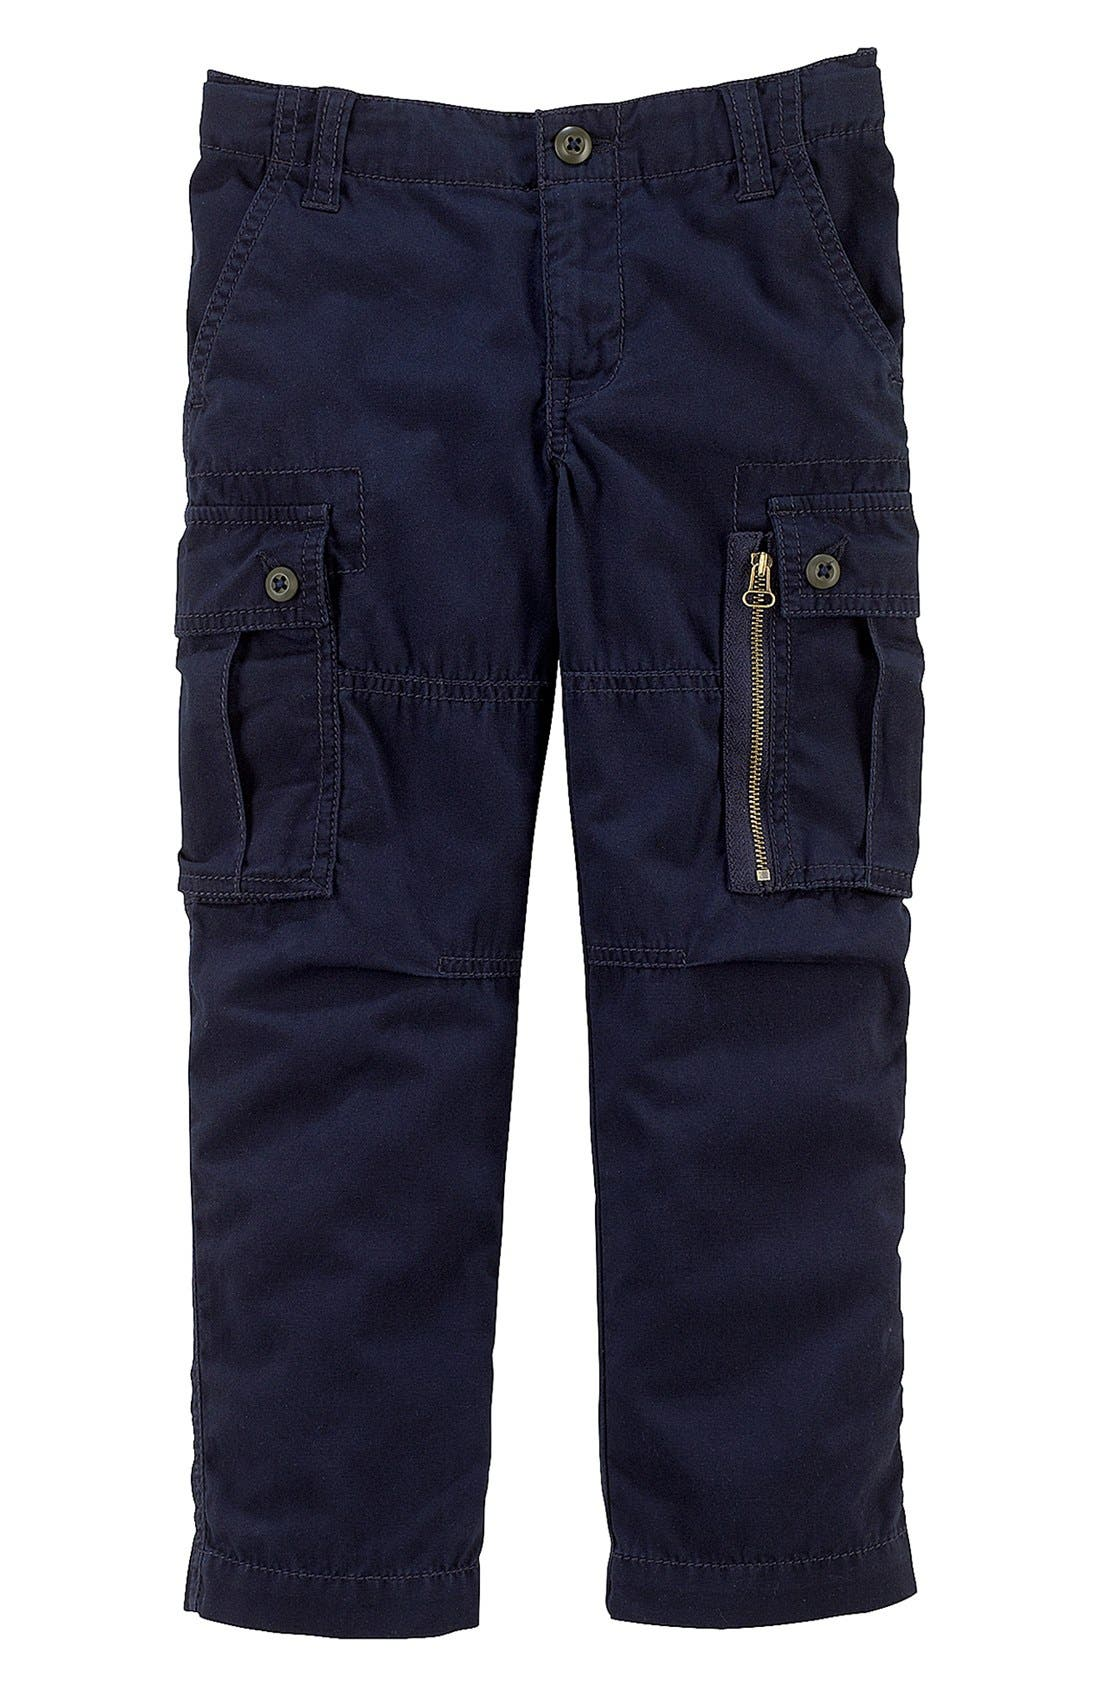 Alternate Image 1 Selected - Ralph Lauren Cargo Pants (Toddler Boys)